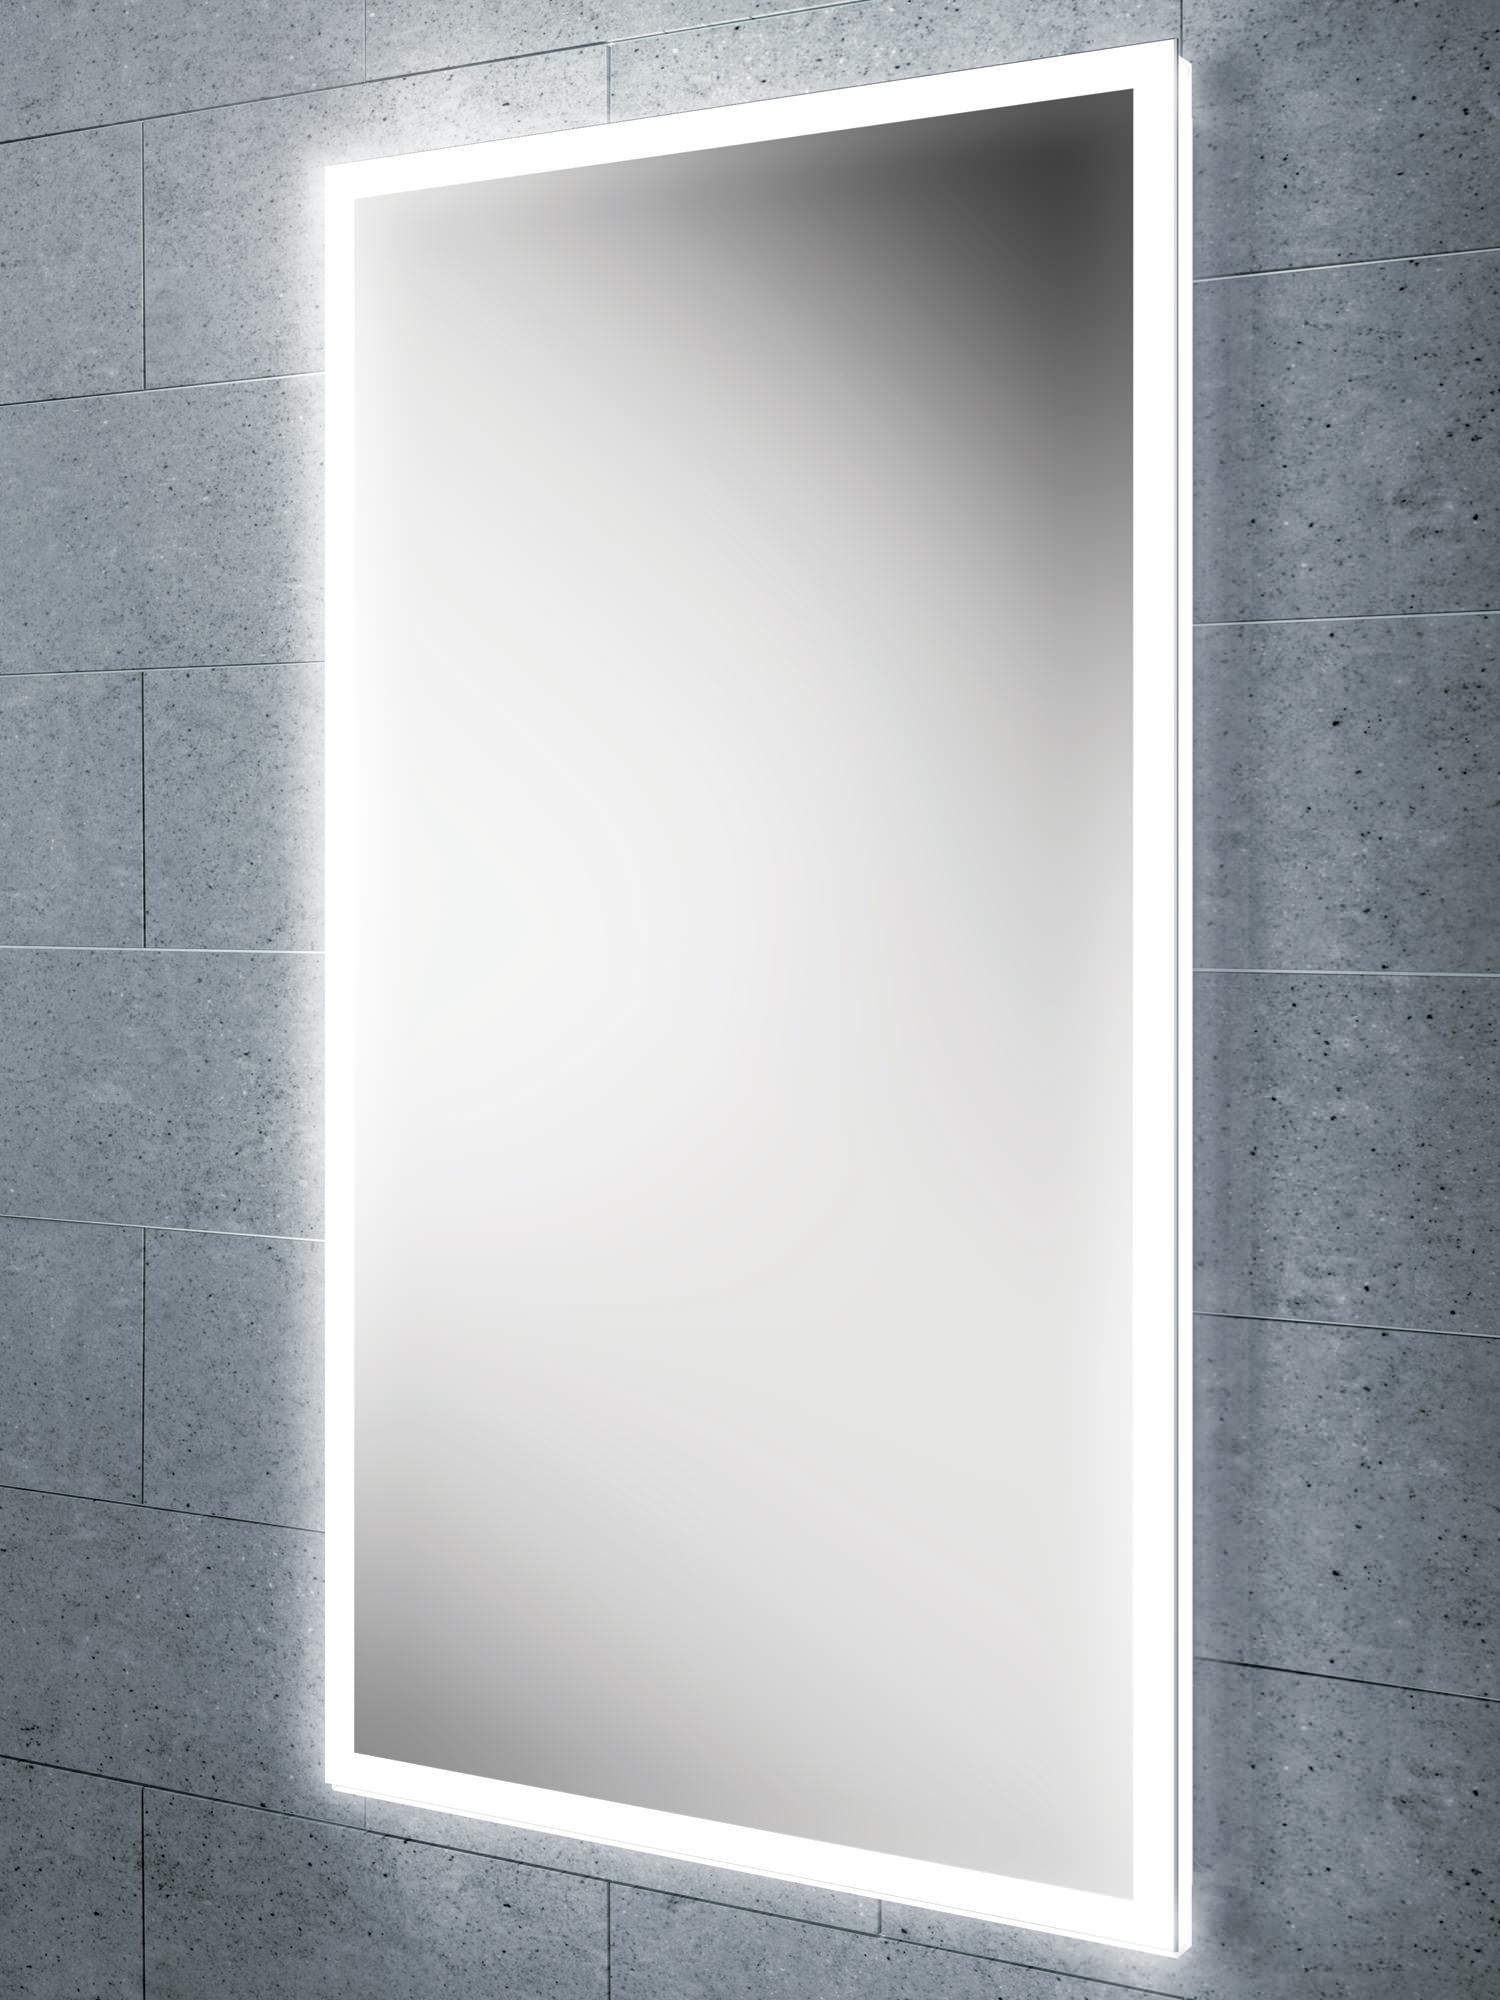 framed modern mirror. Bathroom Cabinets : Modern Mirror Design For Framed Mirrors (Image 6